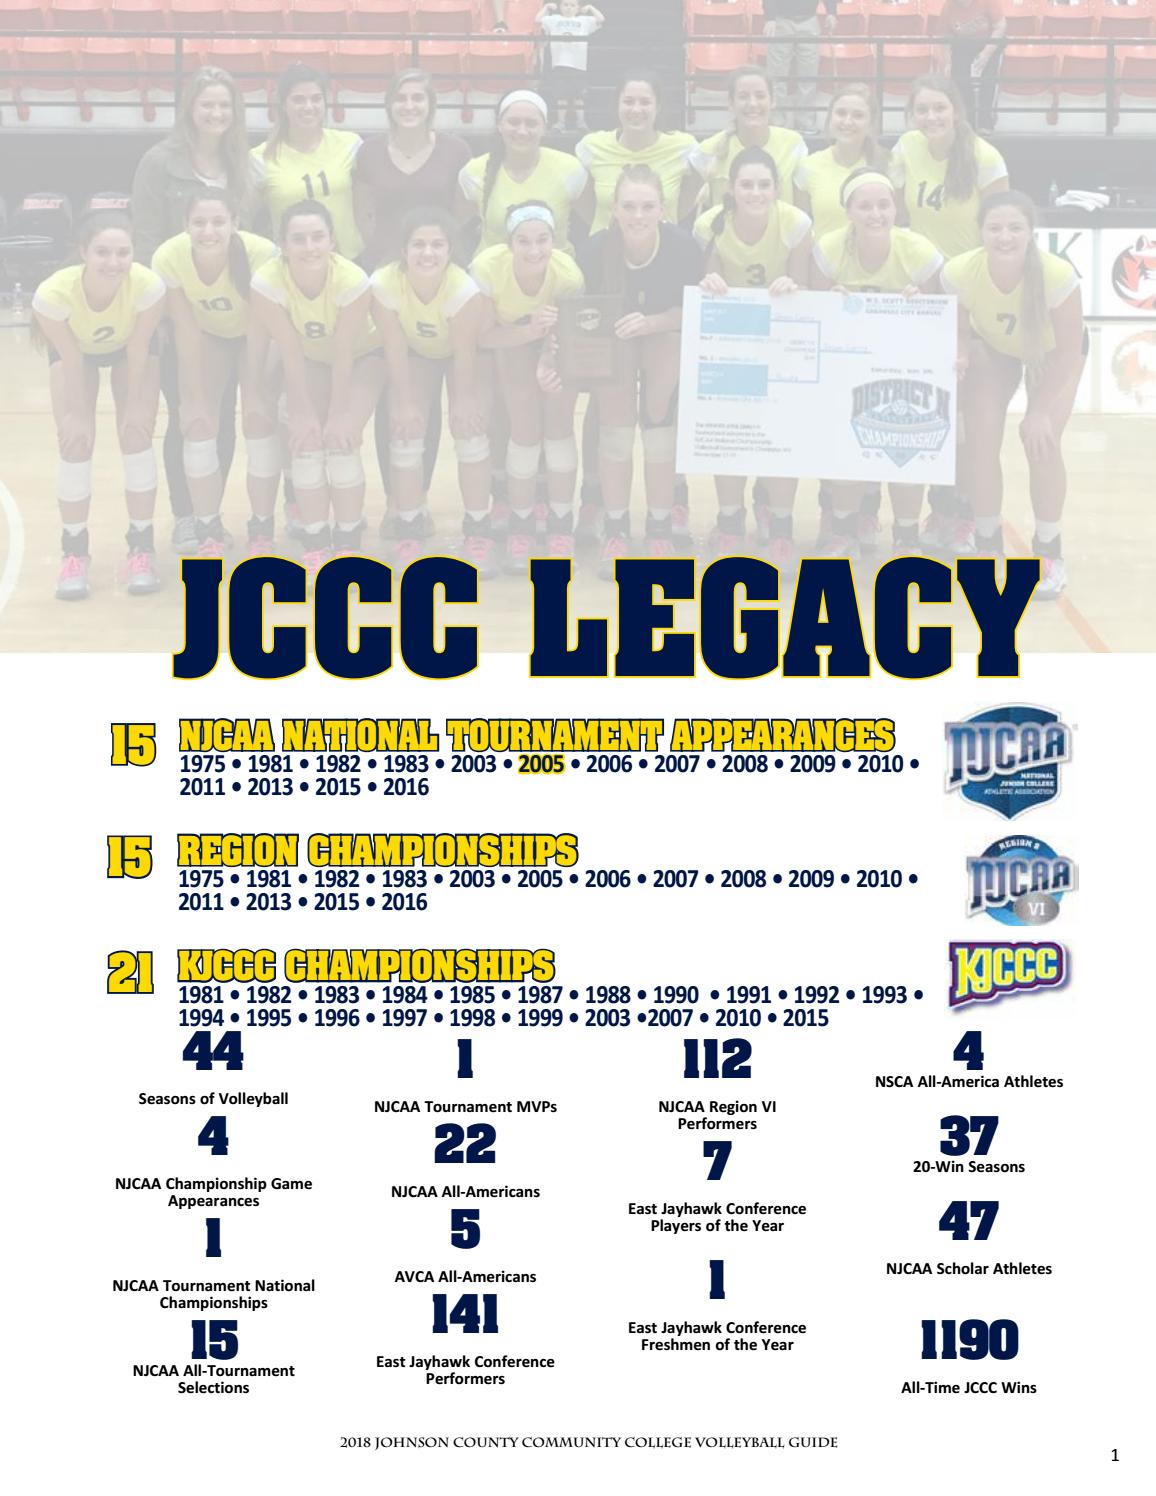 2018 JCCC Volleyball Guide by Chris Gray - issuu 7156dfbdfd0